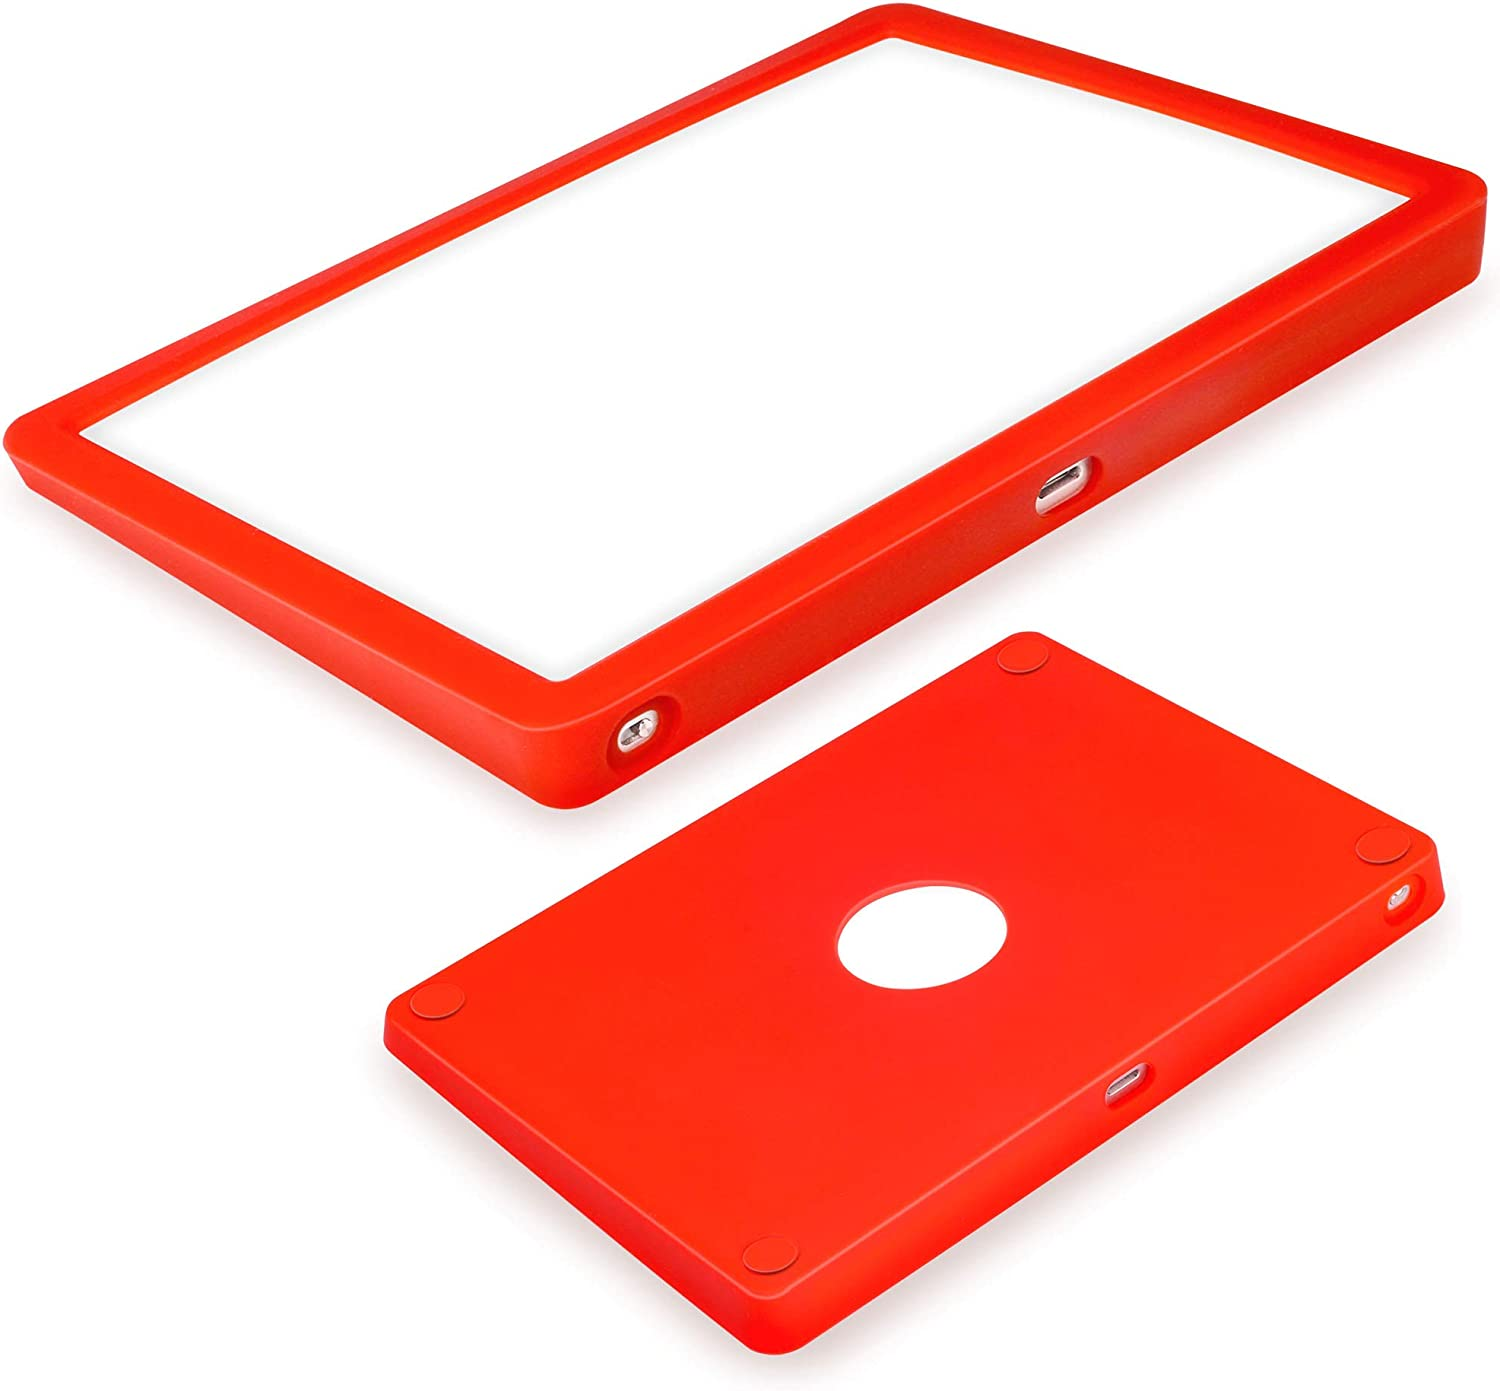 Silicone case for Magic Trackpad 2 Silicon case for Apple Wireless Touchpad Apple Trackpad Protective Cover,Anti-dust and Anti-Scratch Washable Wear-Resistant Silicone Skin (red)